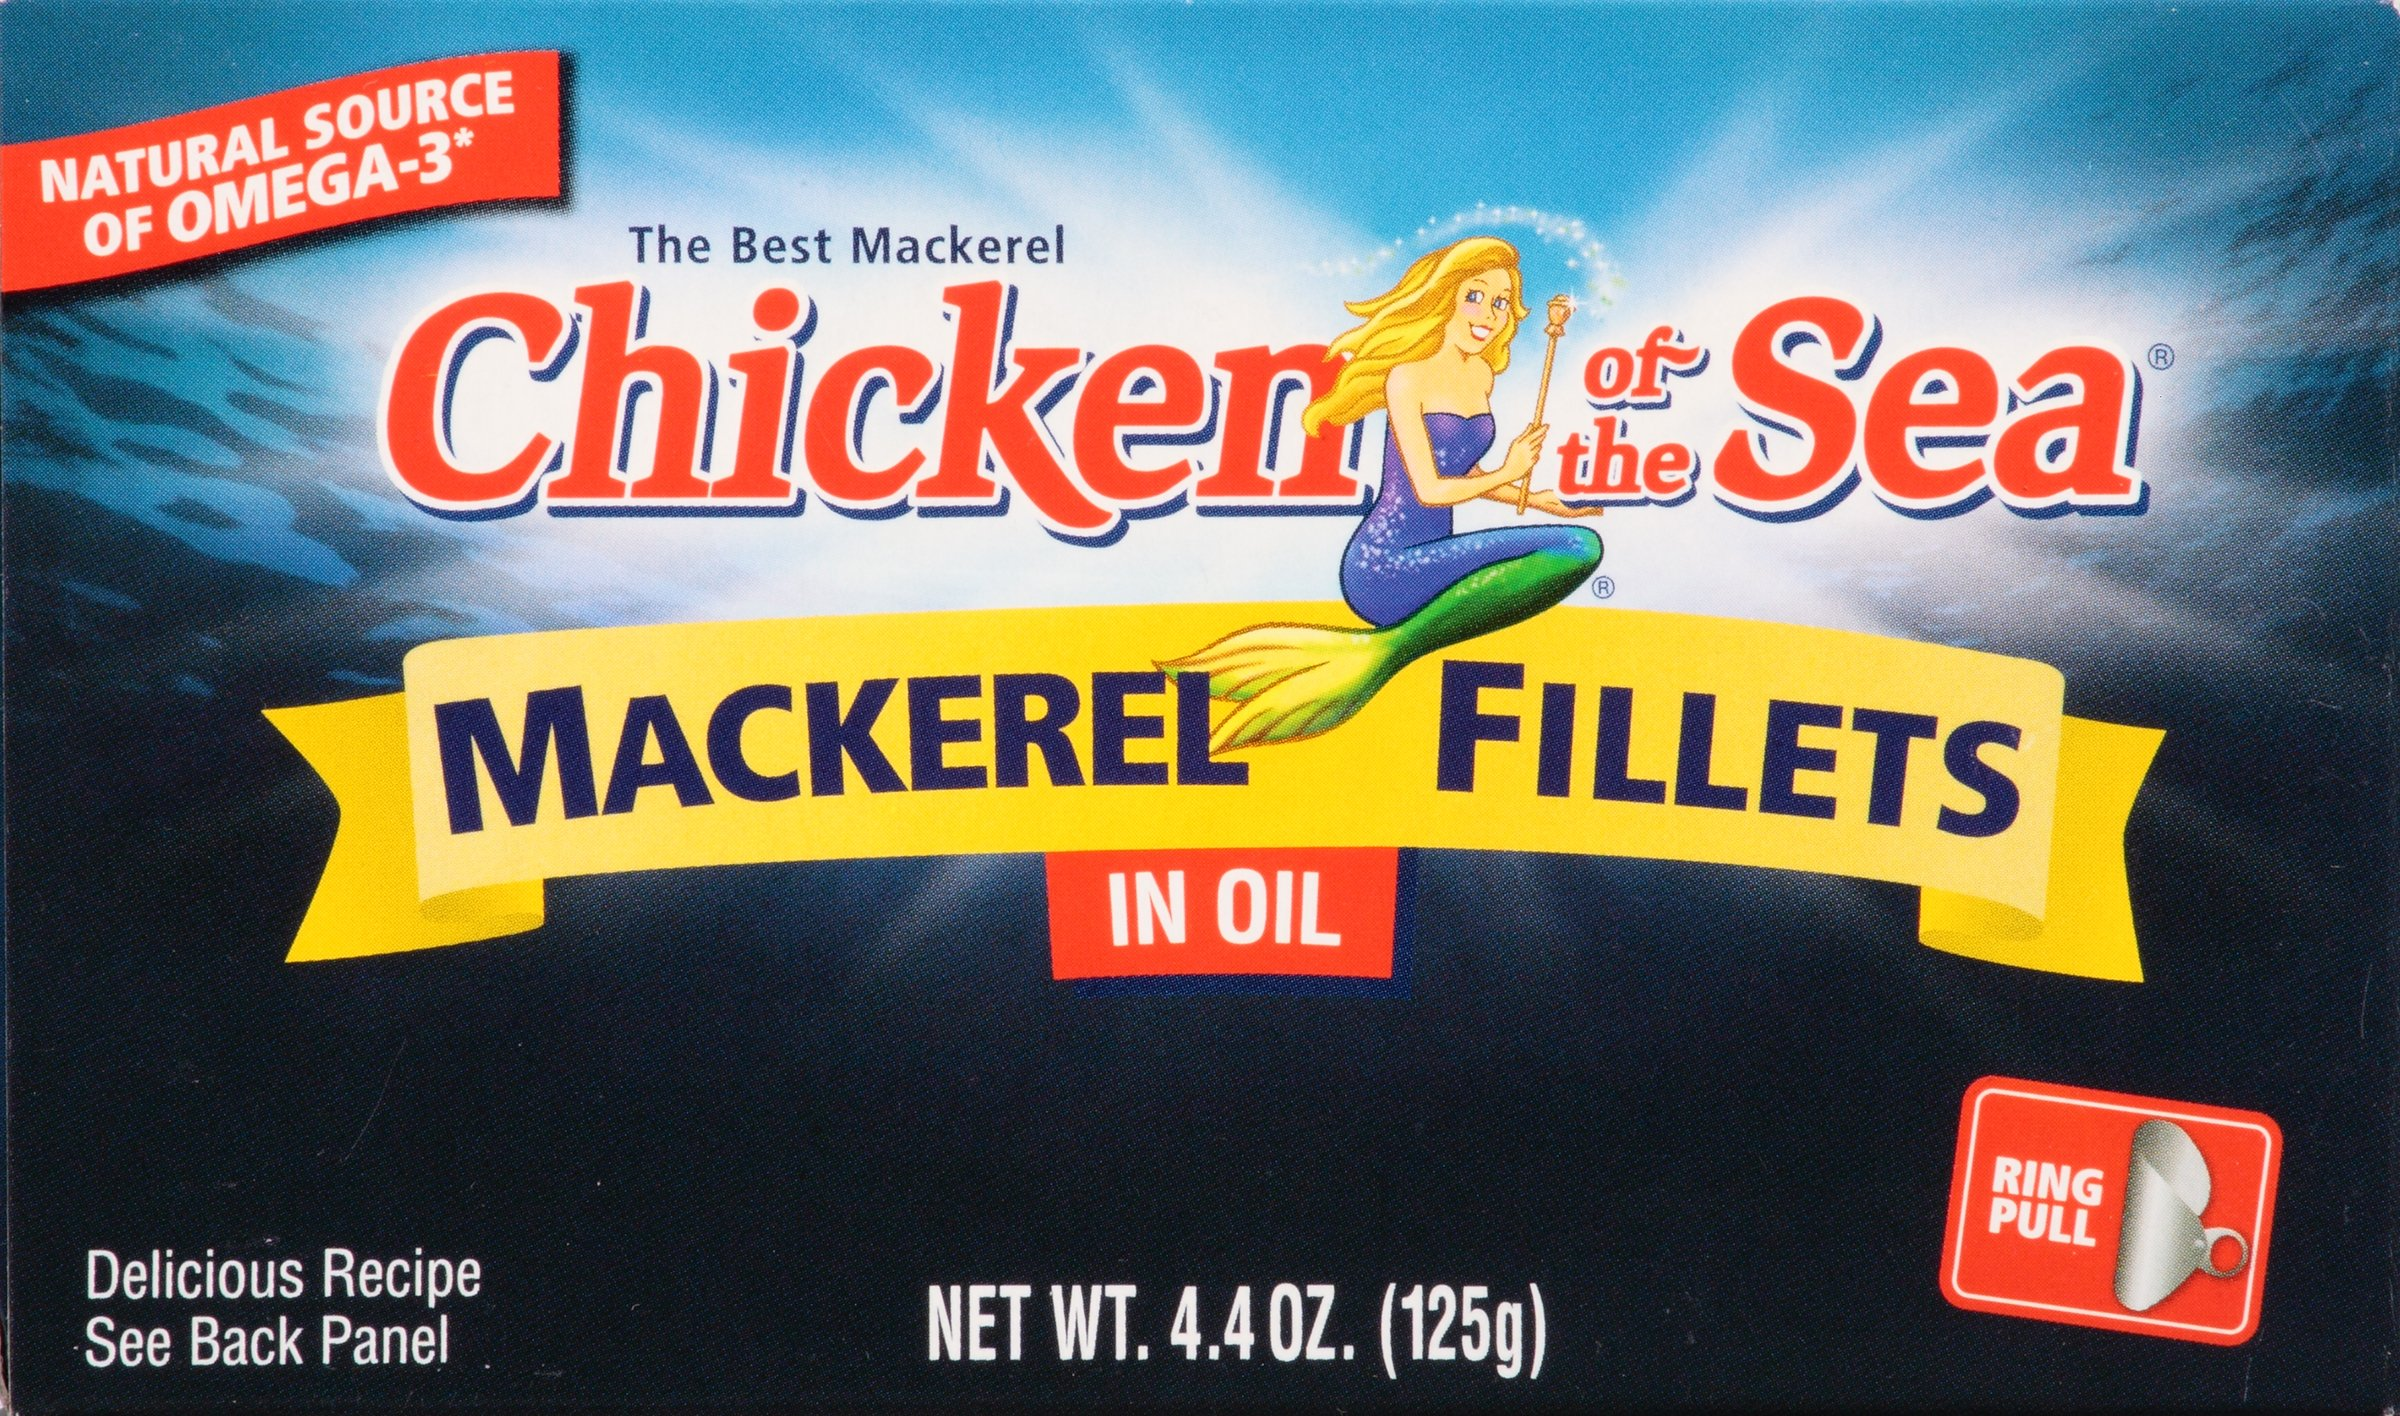 Chicken of the Sea Chicken of the Sea Mackerel Fillet 4.4 oz, Mackerel Fillet, 24 Count (Pack of 24) by Chicken of the Sea